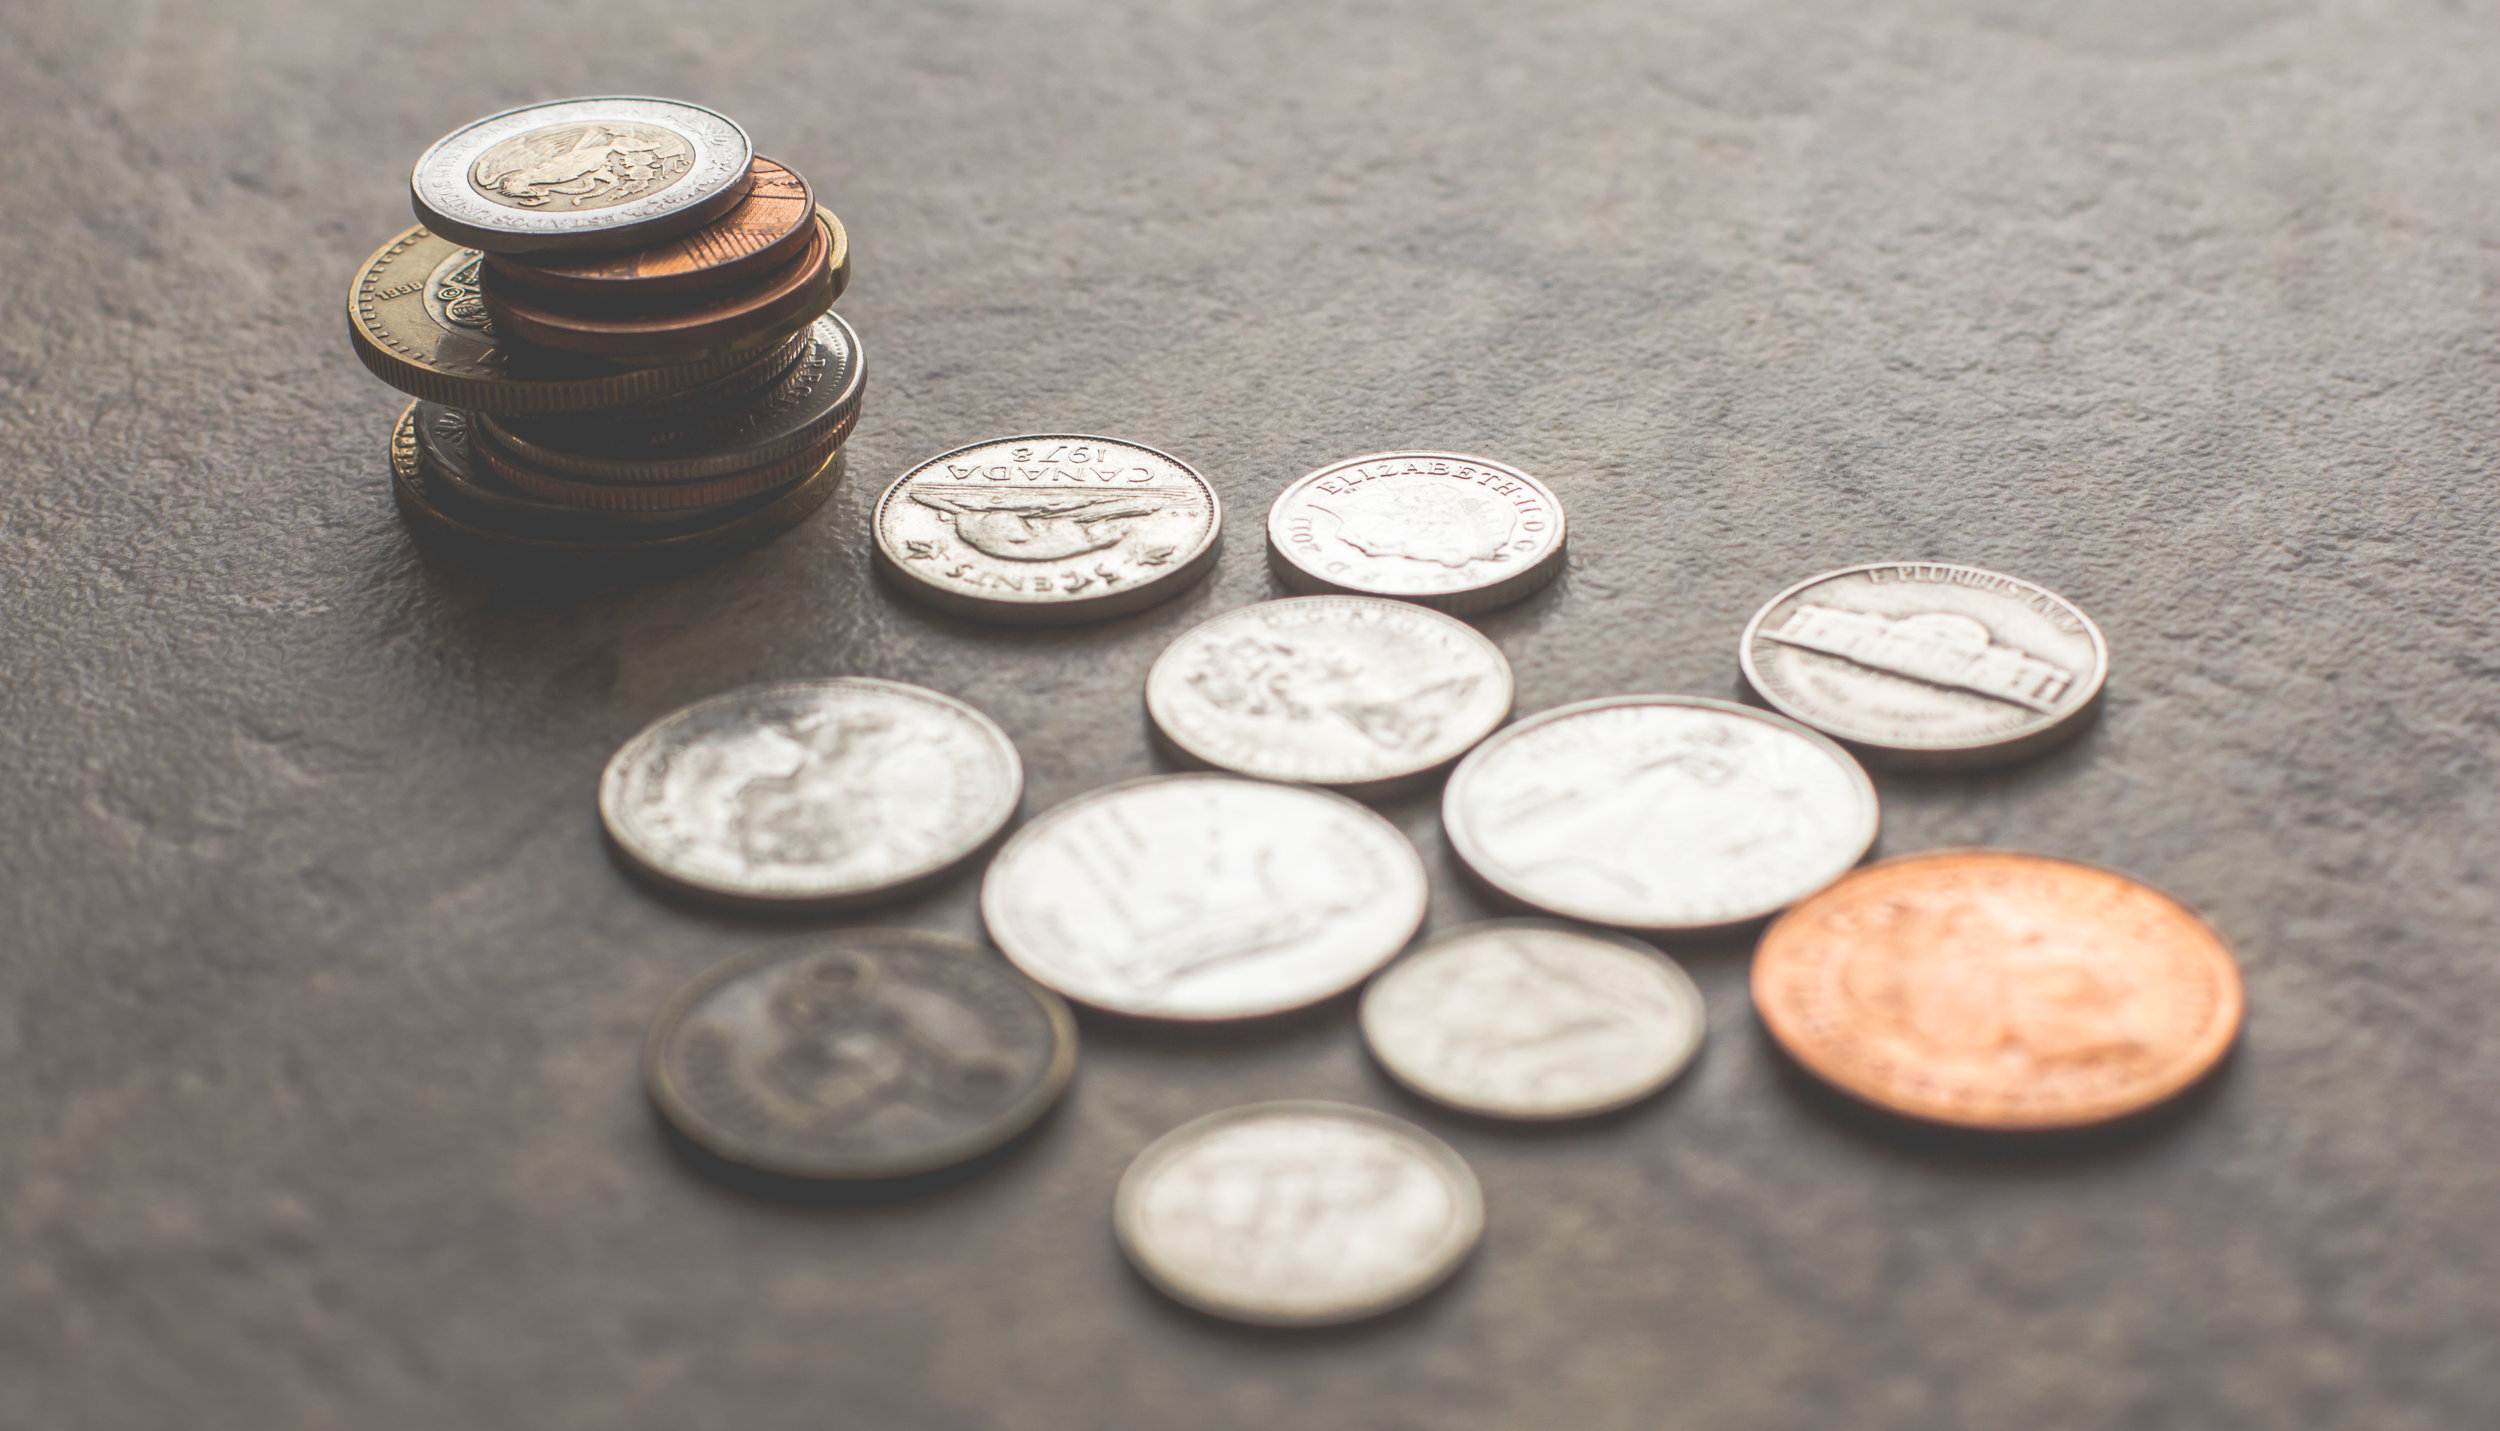 Have some valuable coins? - Have you recently inherited a coin collection and don't know what to do with it? We have the expertise to appraise your collection, or, if you choose to liquidate, we have the resources to help you do that as well.